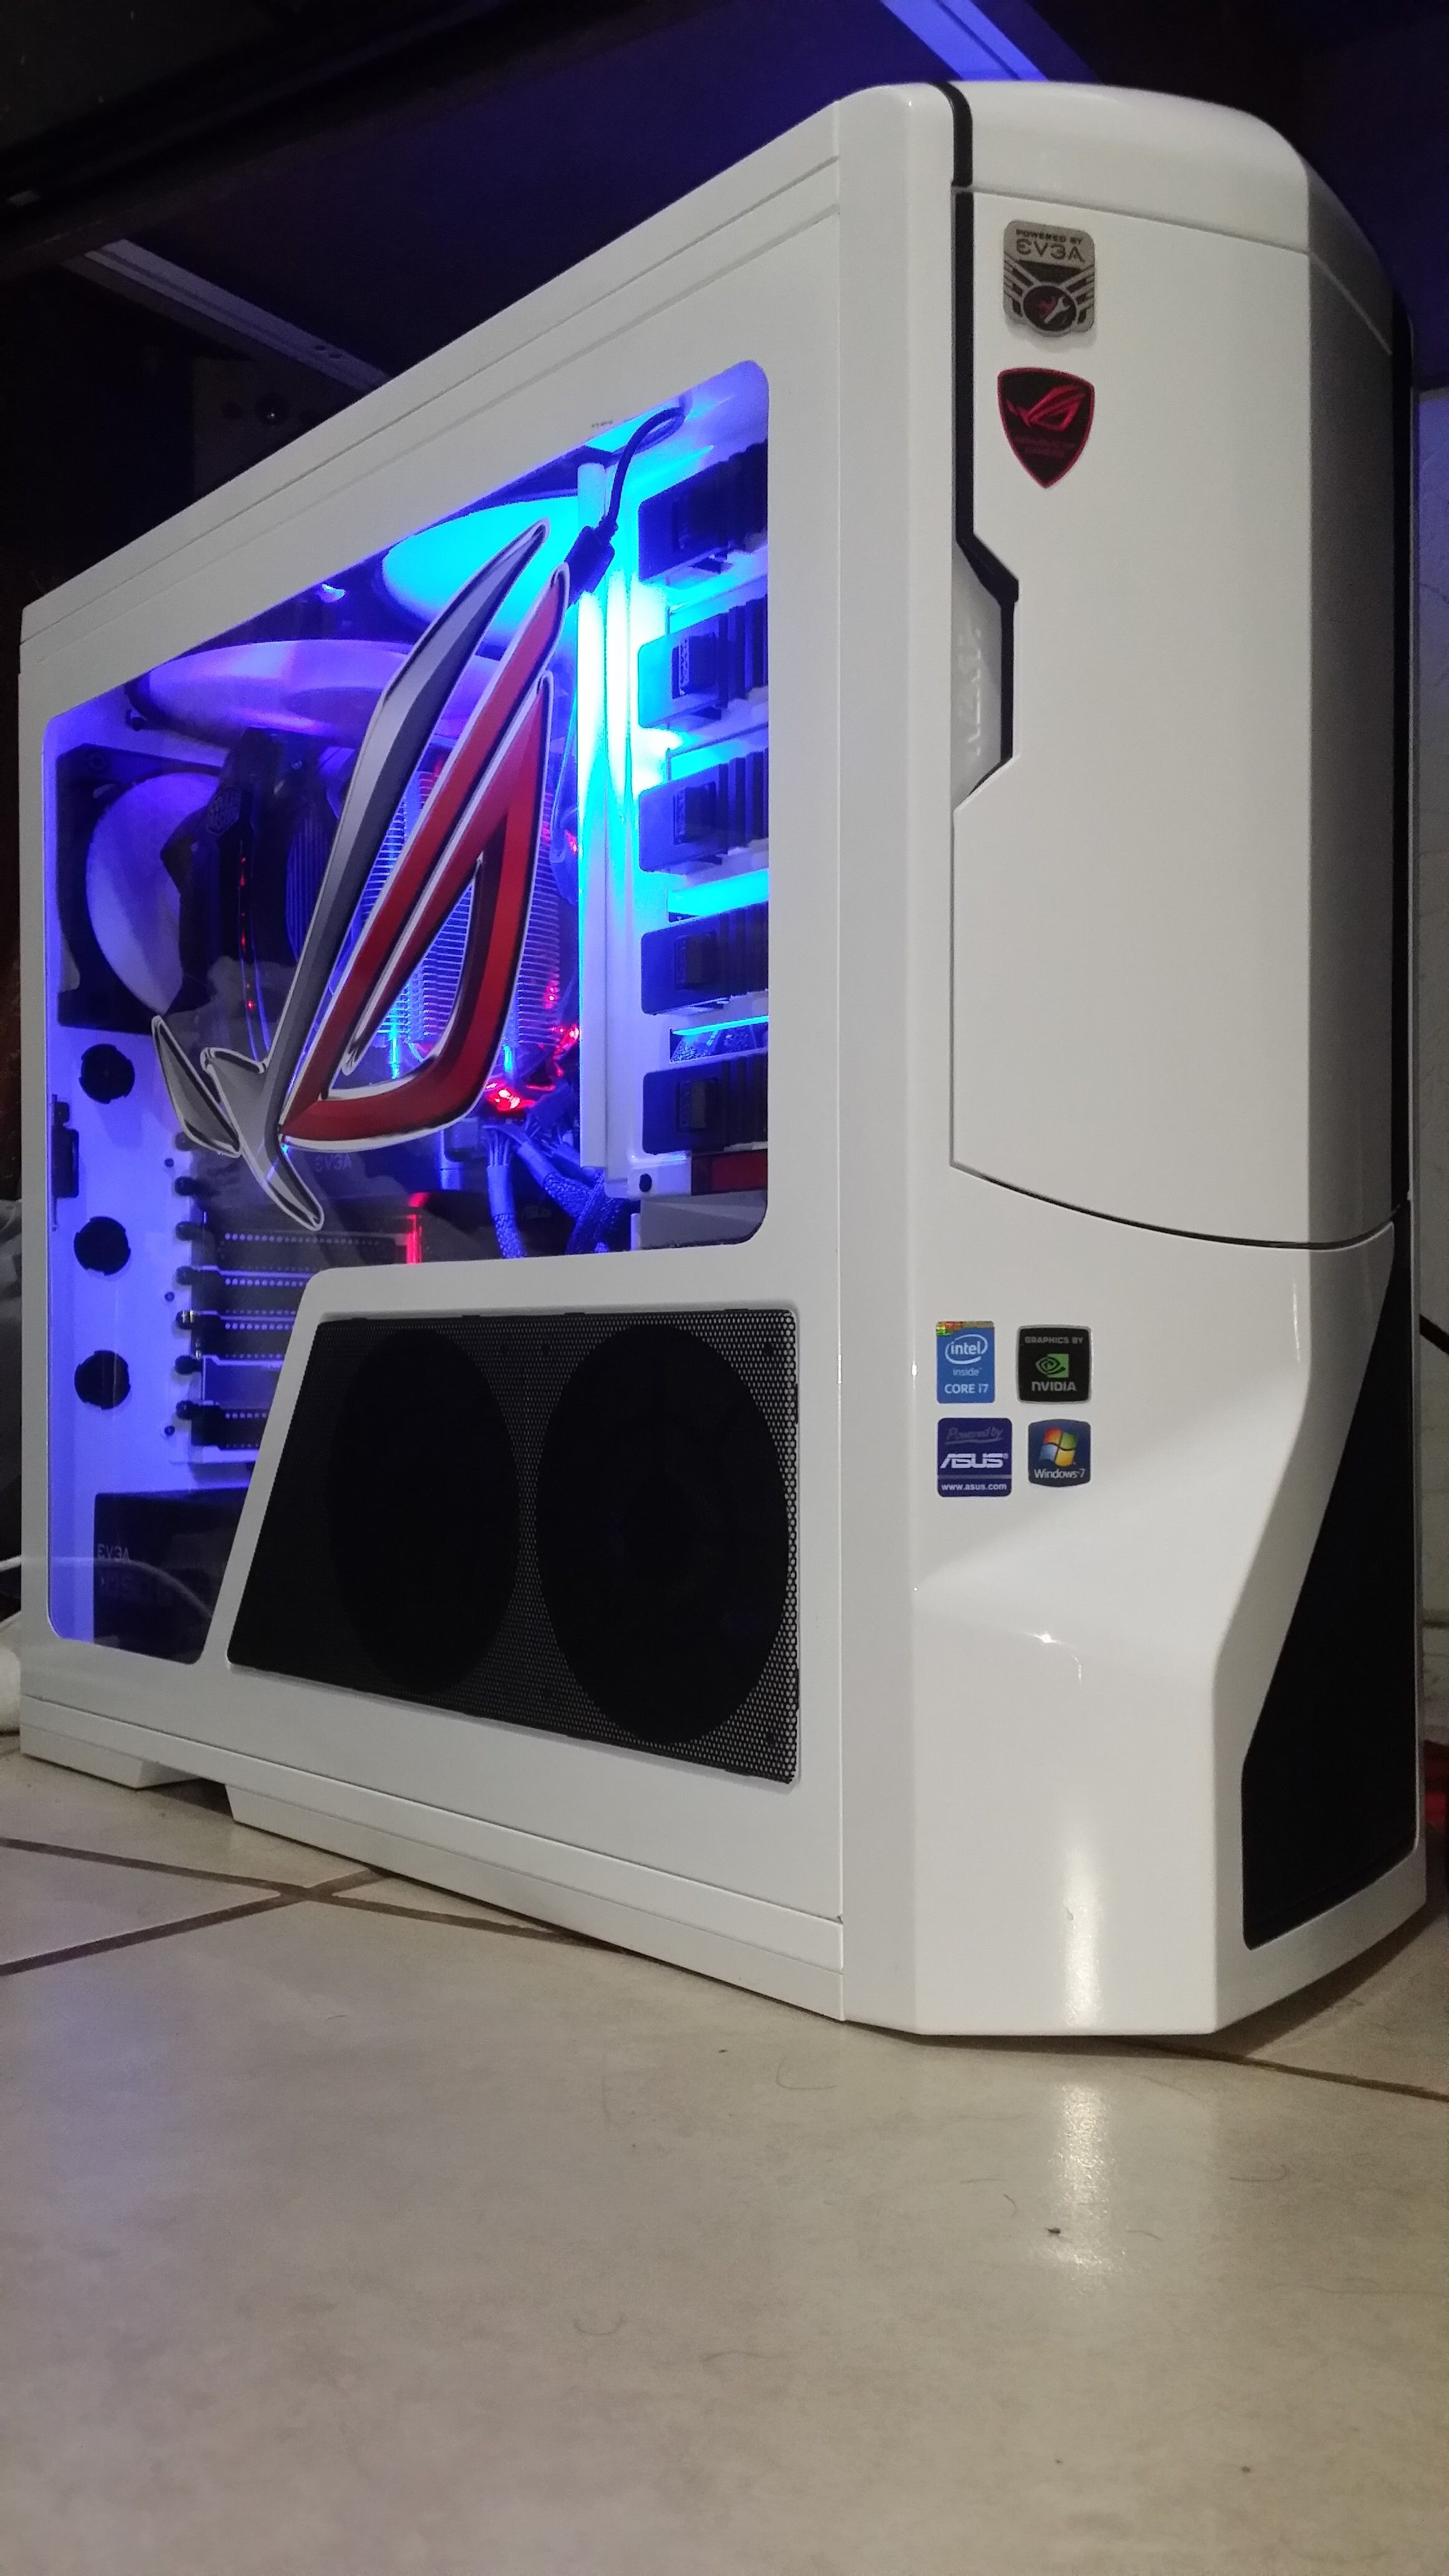 Maury S High End Gaming Pc In A Nzxt Phantom Case Gamingpc Pcgaming Buildapc Jeux Ordinateur Ordinateur Informatique